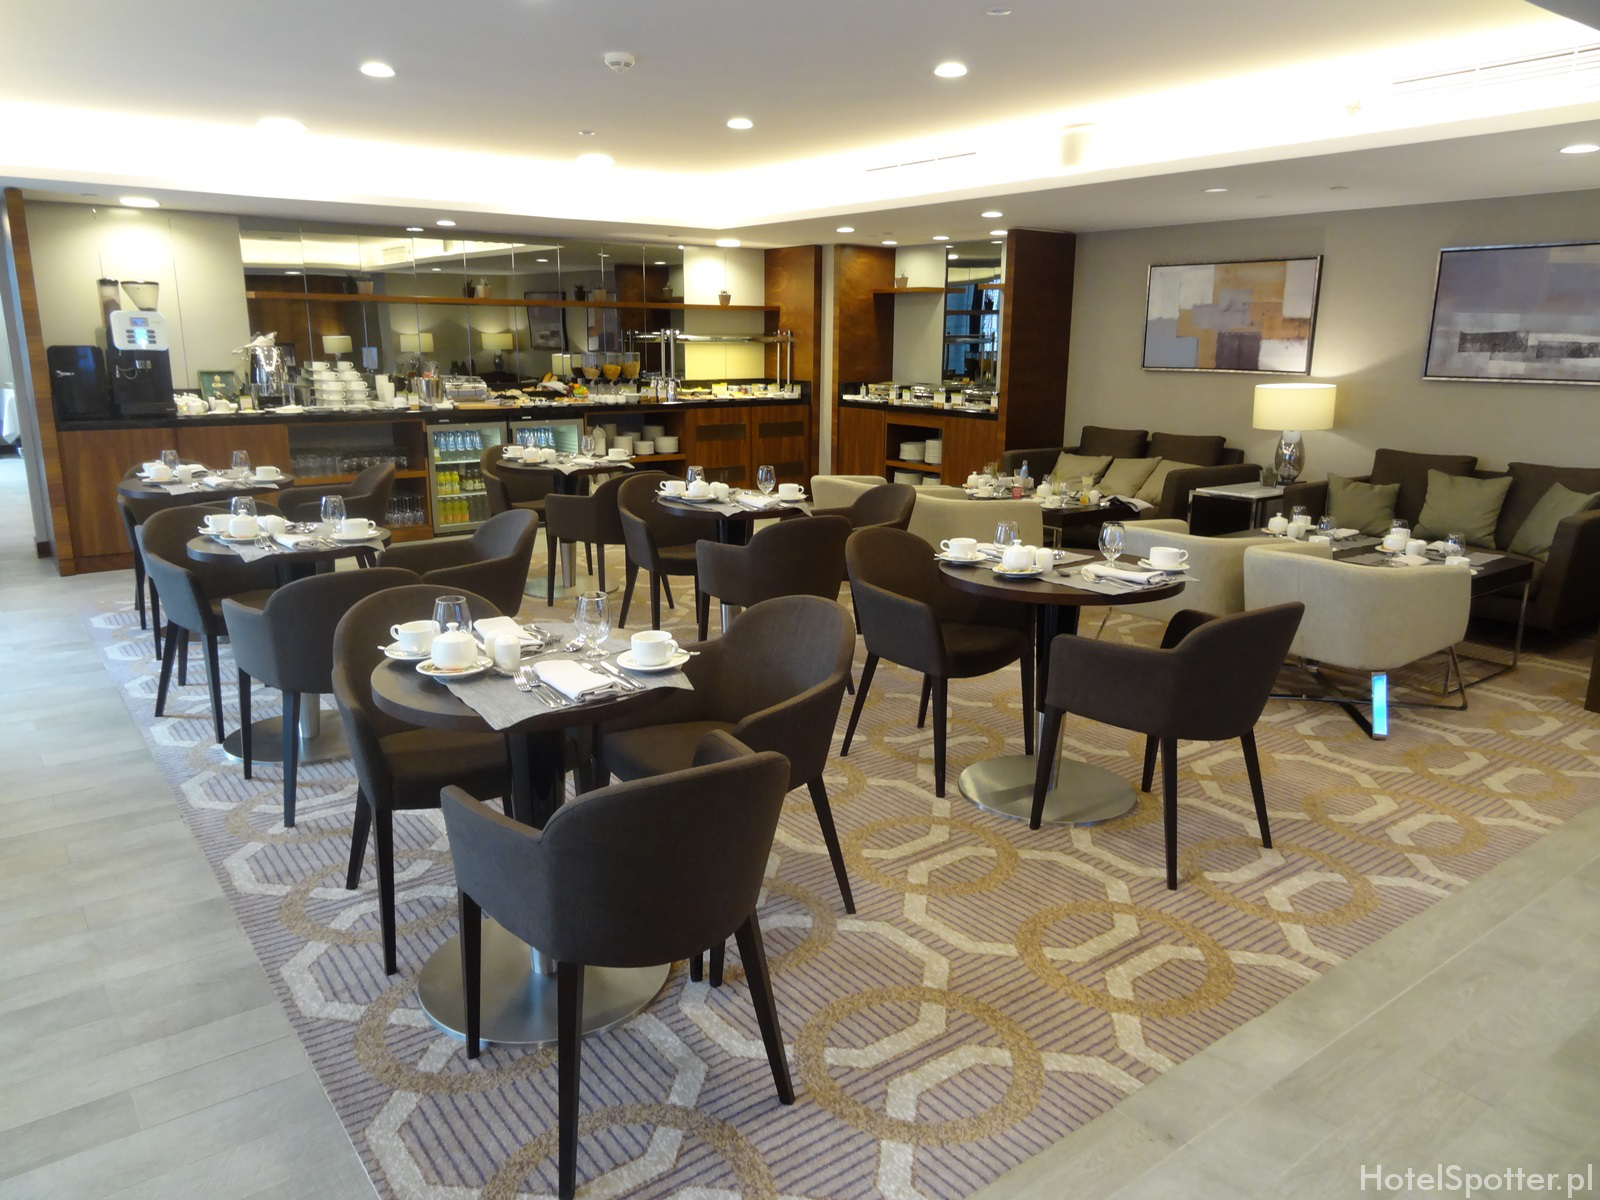 Salonik Executive Lounge w DoubleTree by Hilton Warsaw - sniadanie